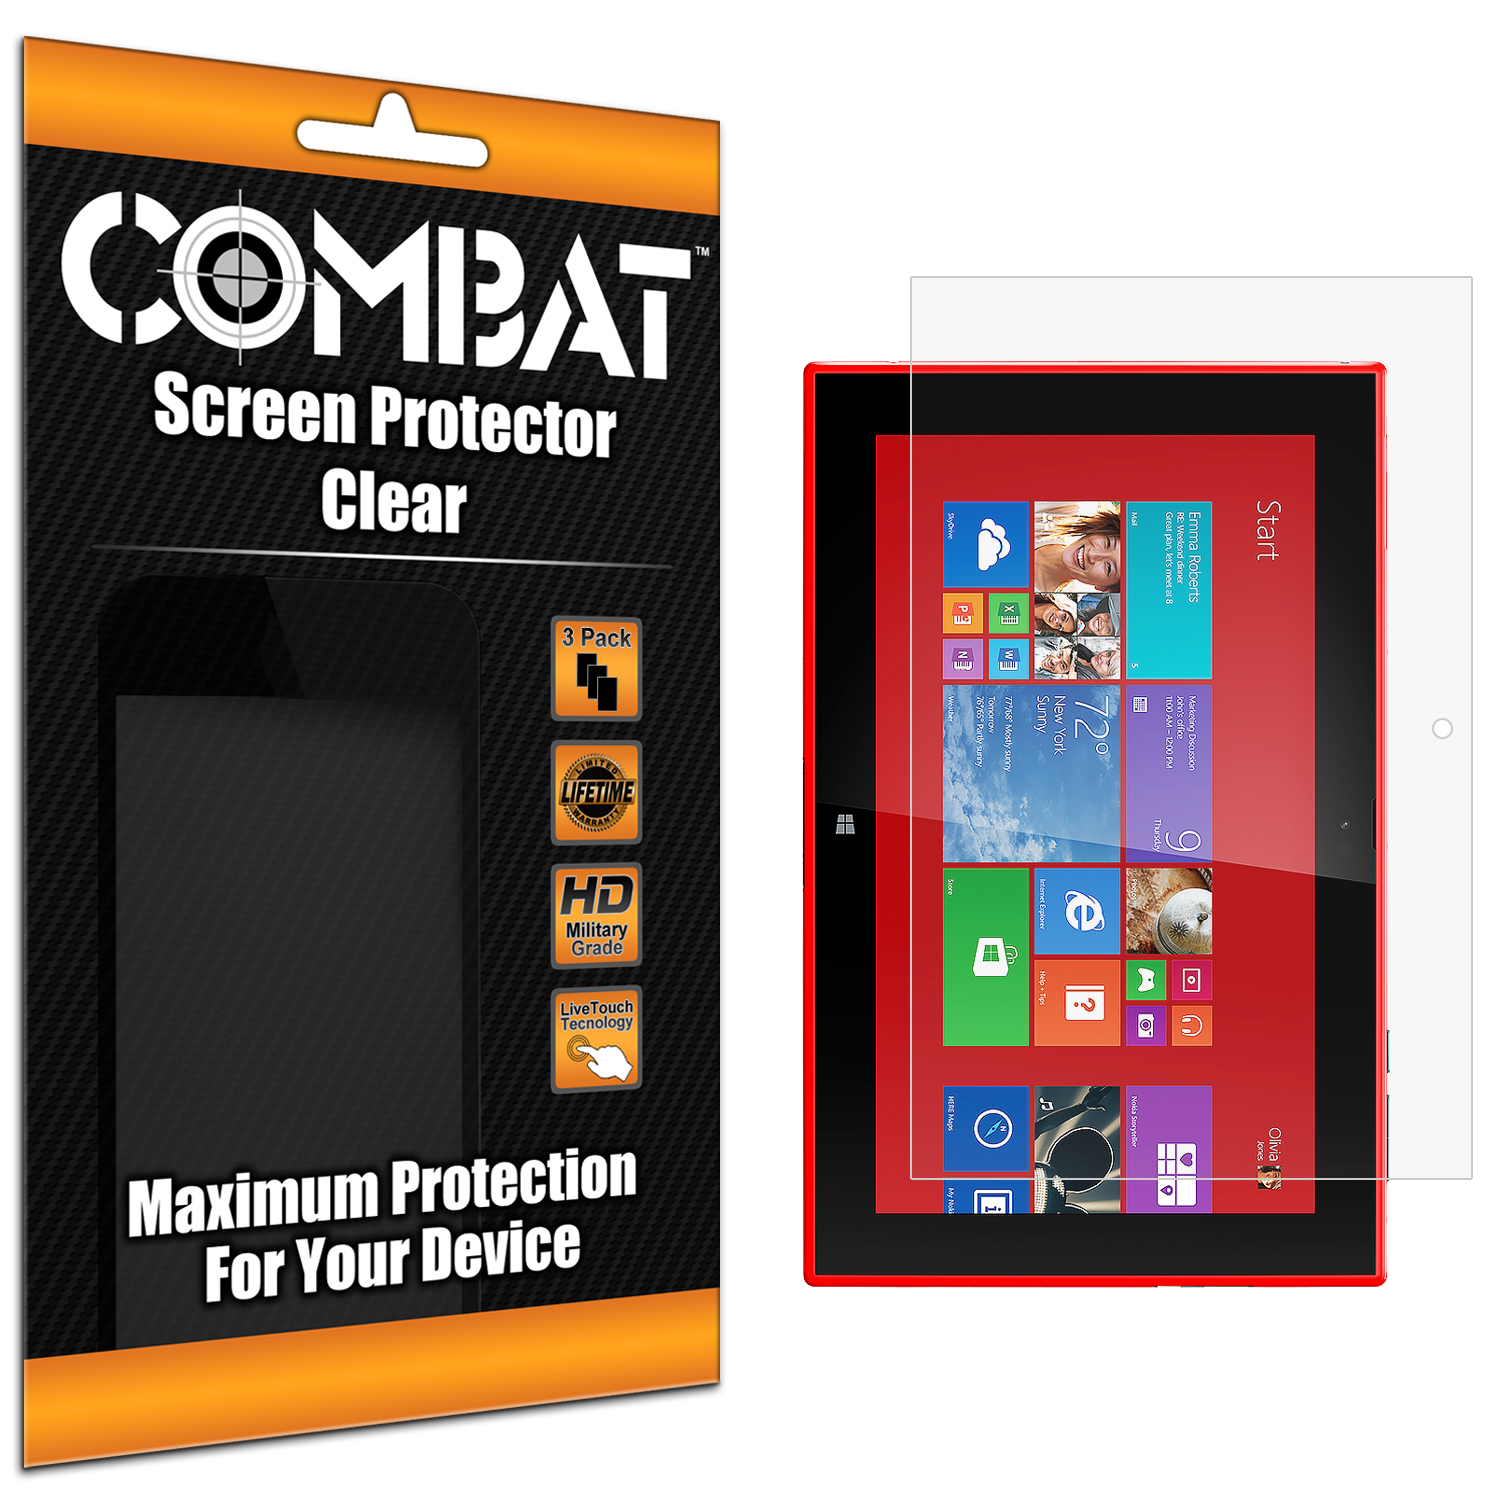 Nokia Lumia 2520 Combat 3 Pack HD Clear Screen Protector